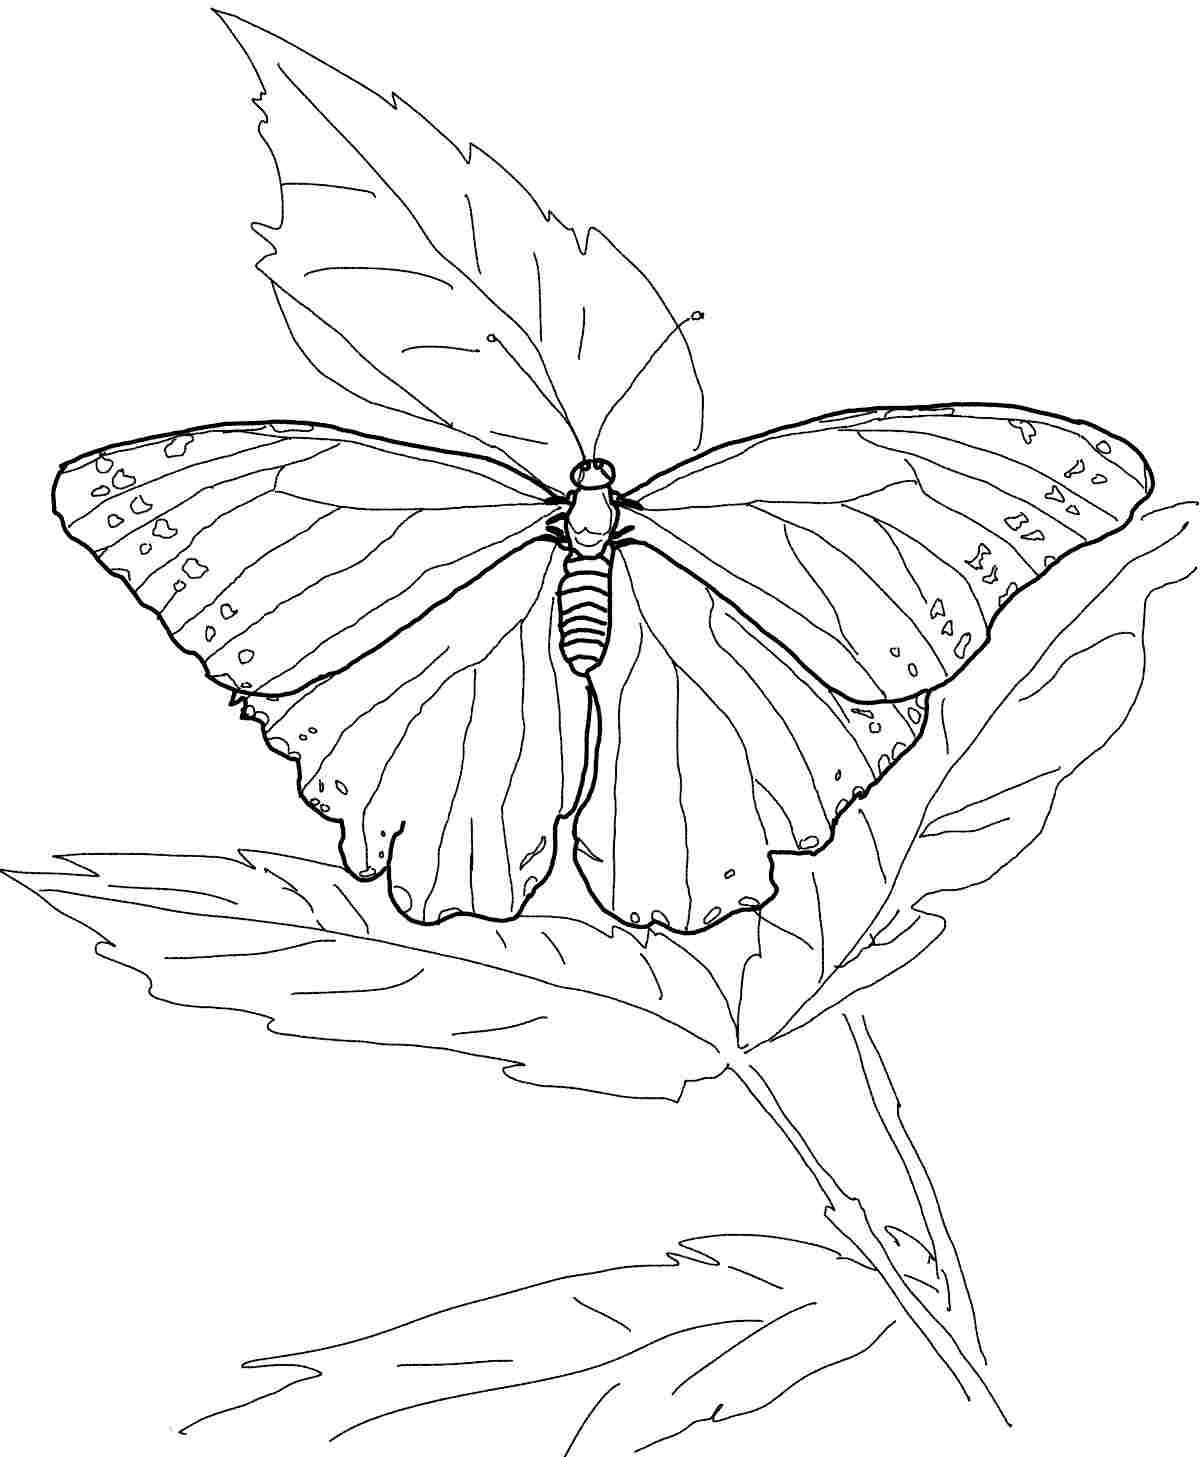 Pictures of monarch butterflies for coloring - Monarch Butterfly Drawing Google Search